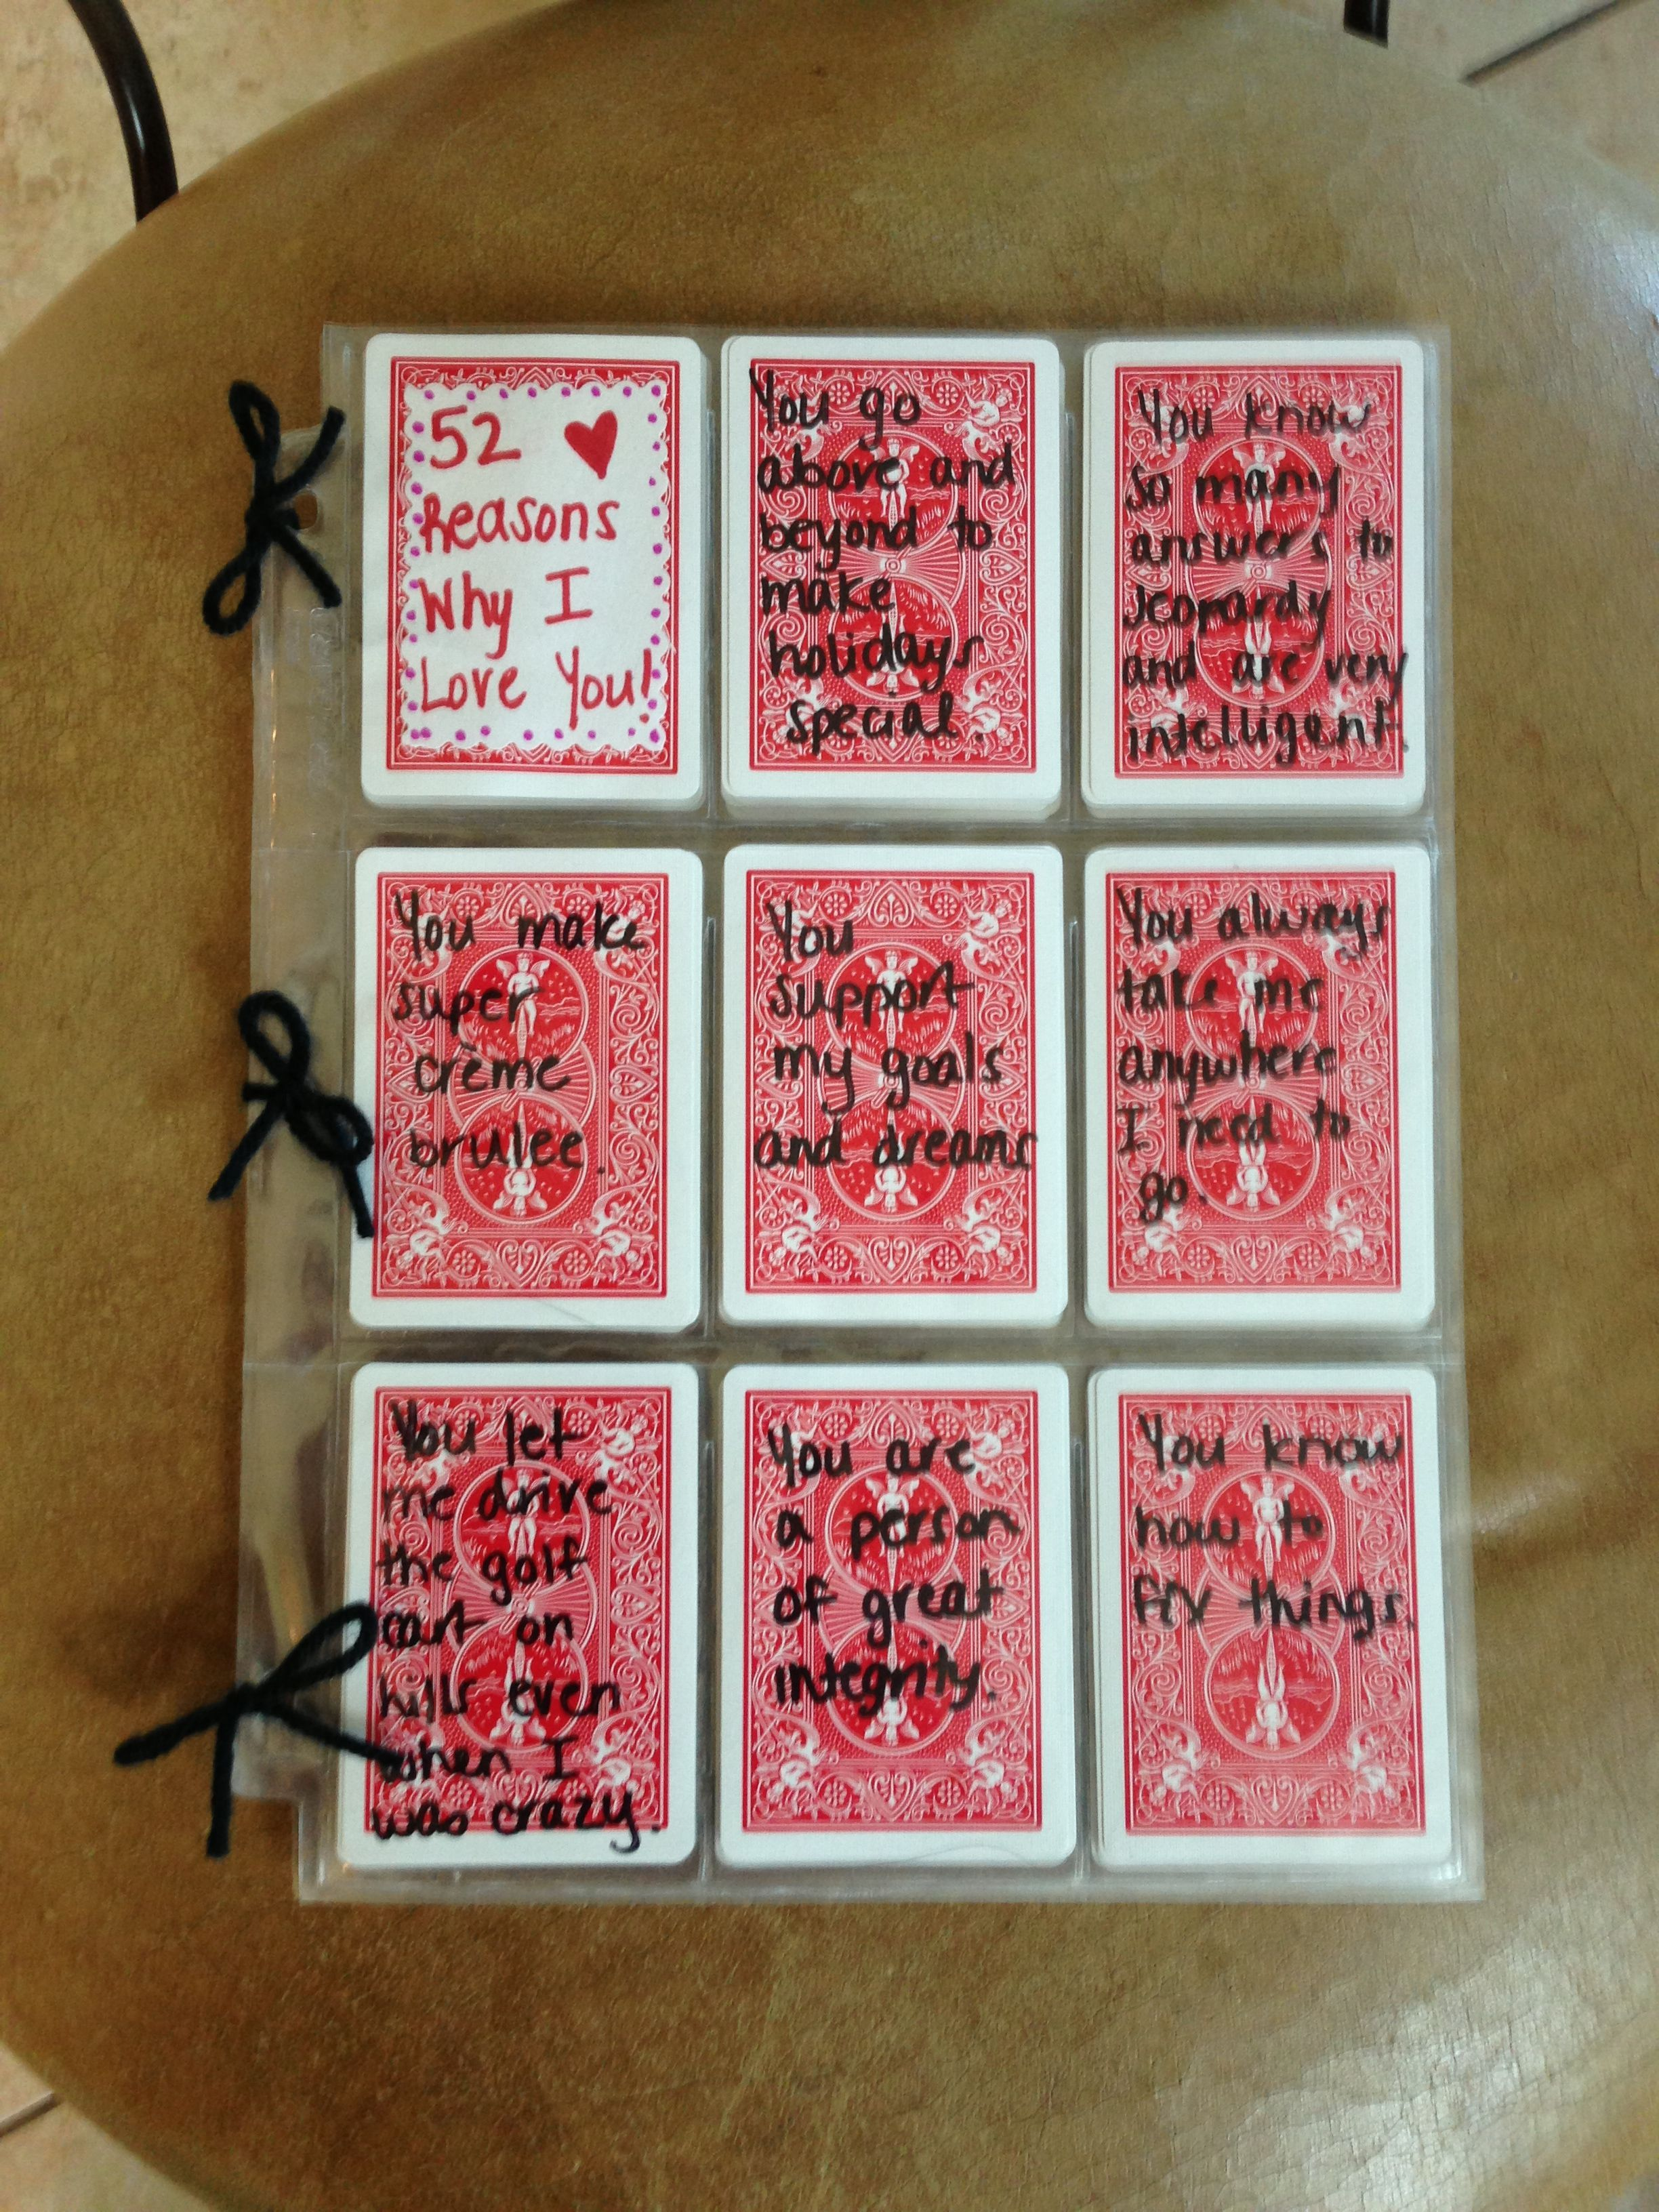 21 Reasons I Love You Jar Weekly love you note lockdown Valentines Regarding 52 Things I Love About You Cards Template